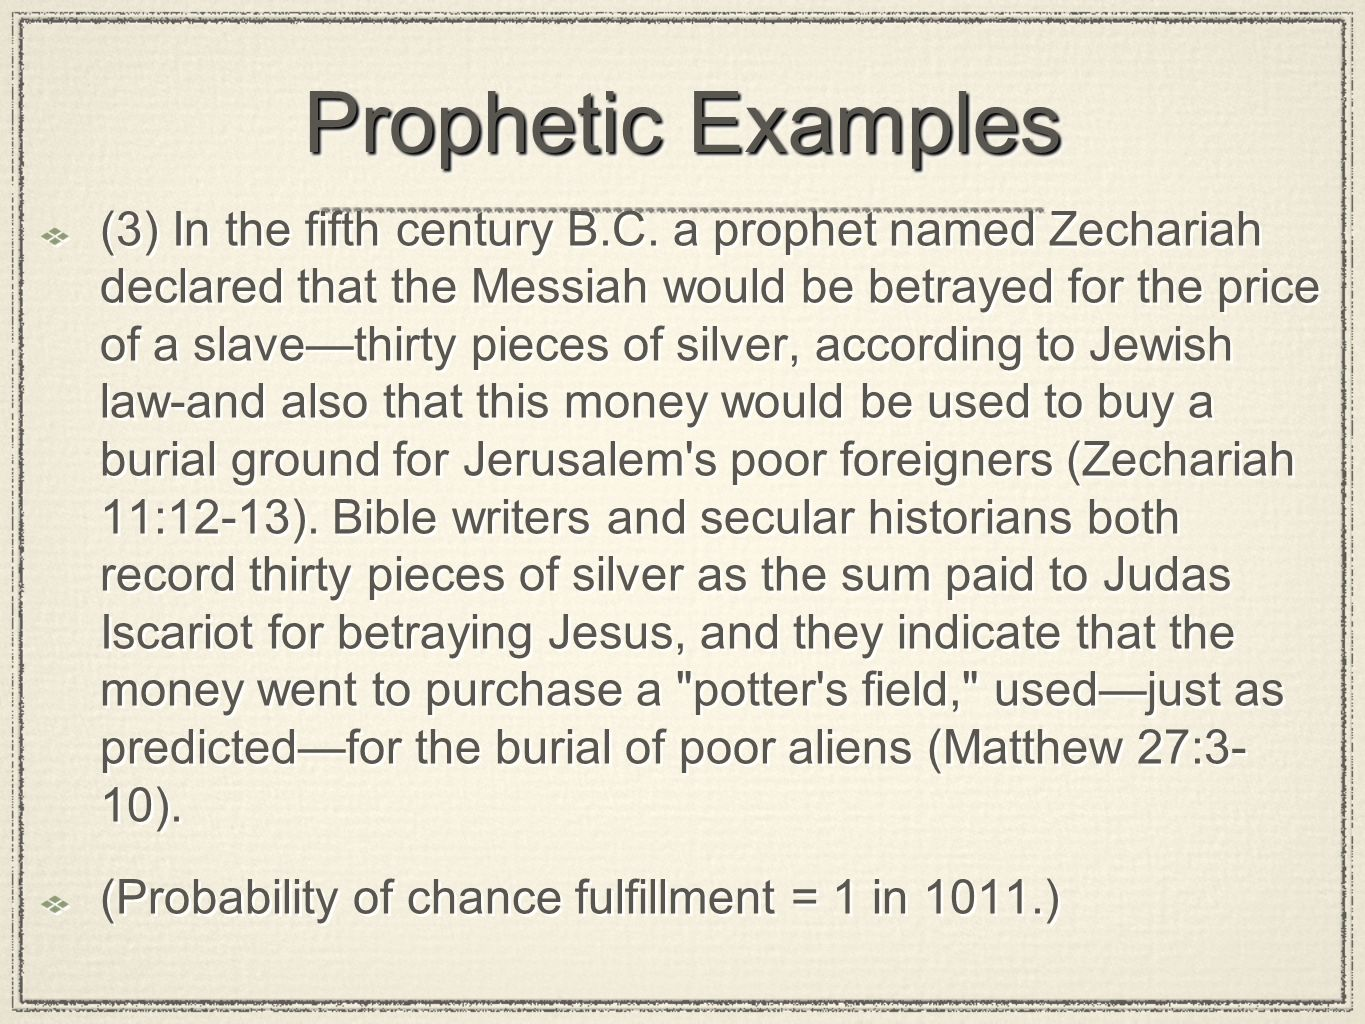 Prophetic Examples (3) In the fifth century B.C. a prophet named Zechariah declared that the Messiah would be betrayed for the price of a slavethirty